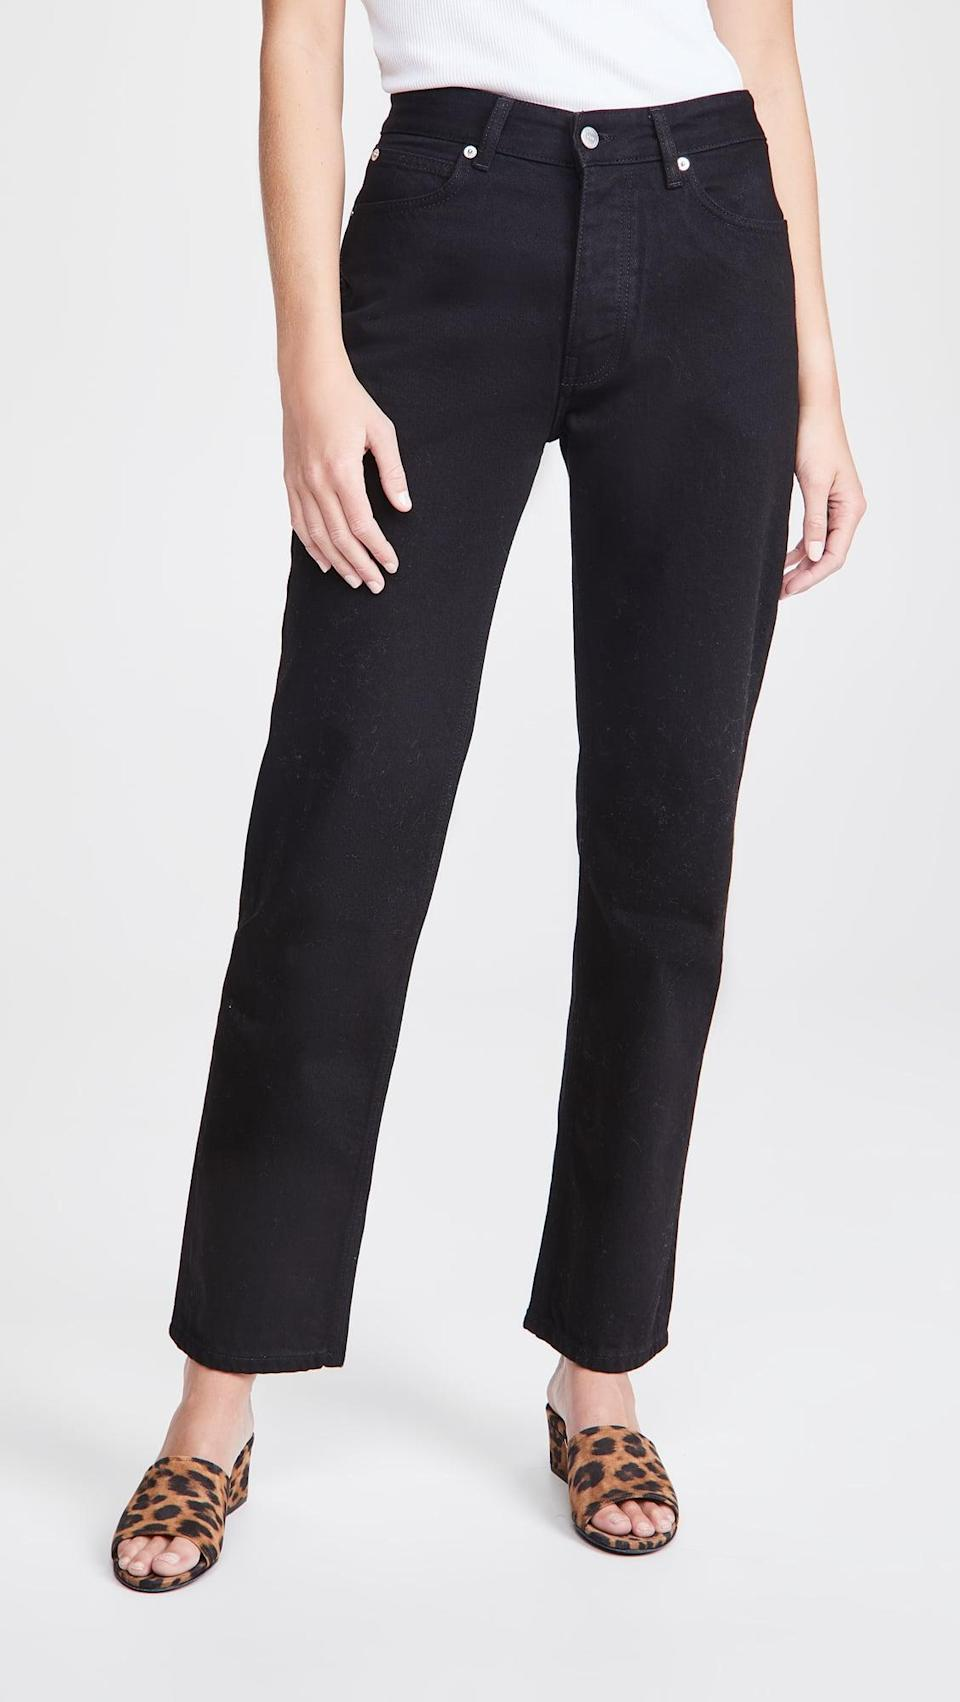 <p>These <span>Victoria Victoria Beckham Arizona Jeans</span> ($159, originally $265) are so chic, and a timeless silhouette.</p>